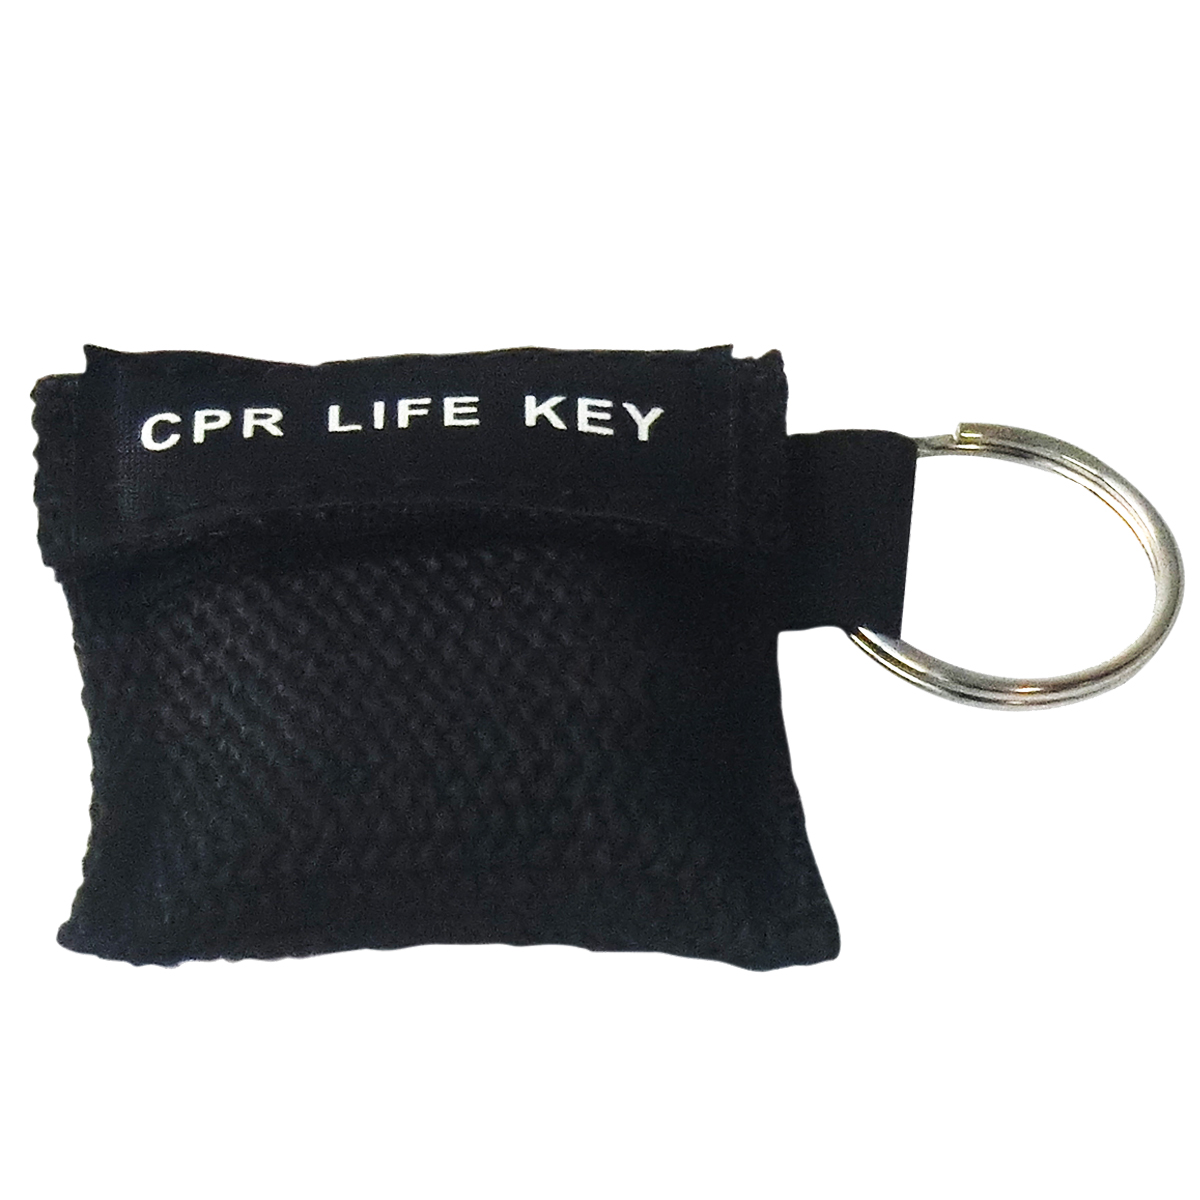 100Pcs/Pack CPR Resuscitator Keychain Mask Key Ring Emergency Rescue Face Shield Black new 10pcs pack big first aid cpr rescue face shield mask portable face shield oxygen inlet resuscitator